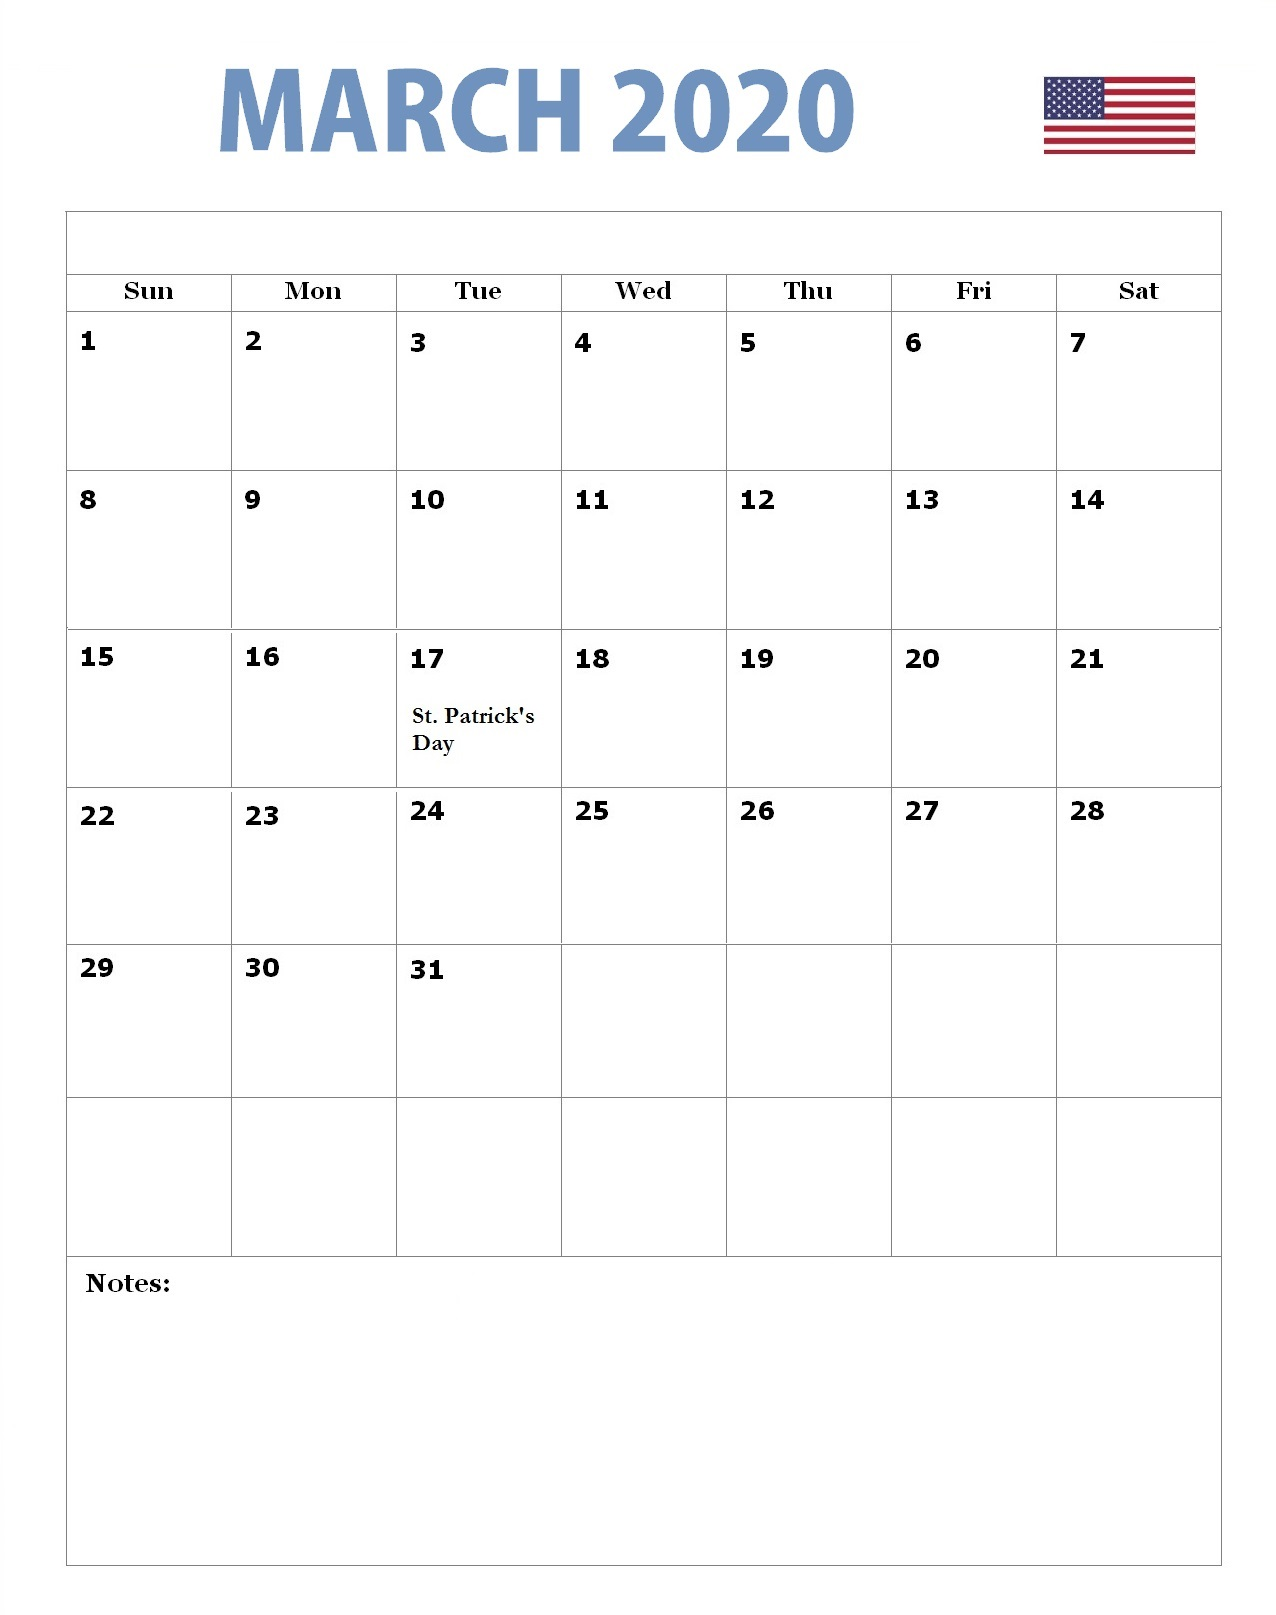 USA March 2020 Federal Holidays Calendar